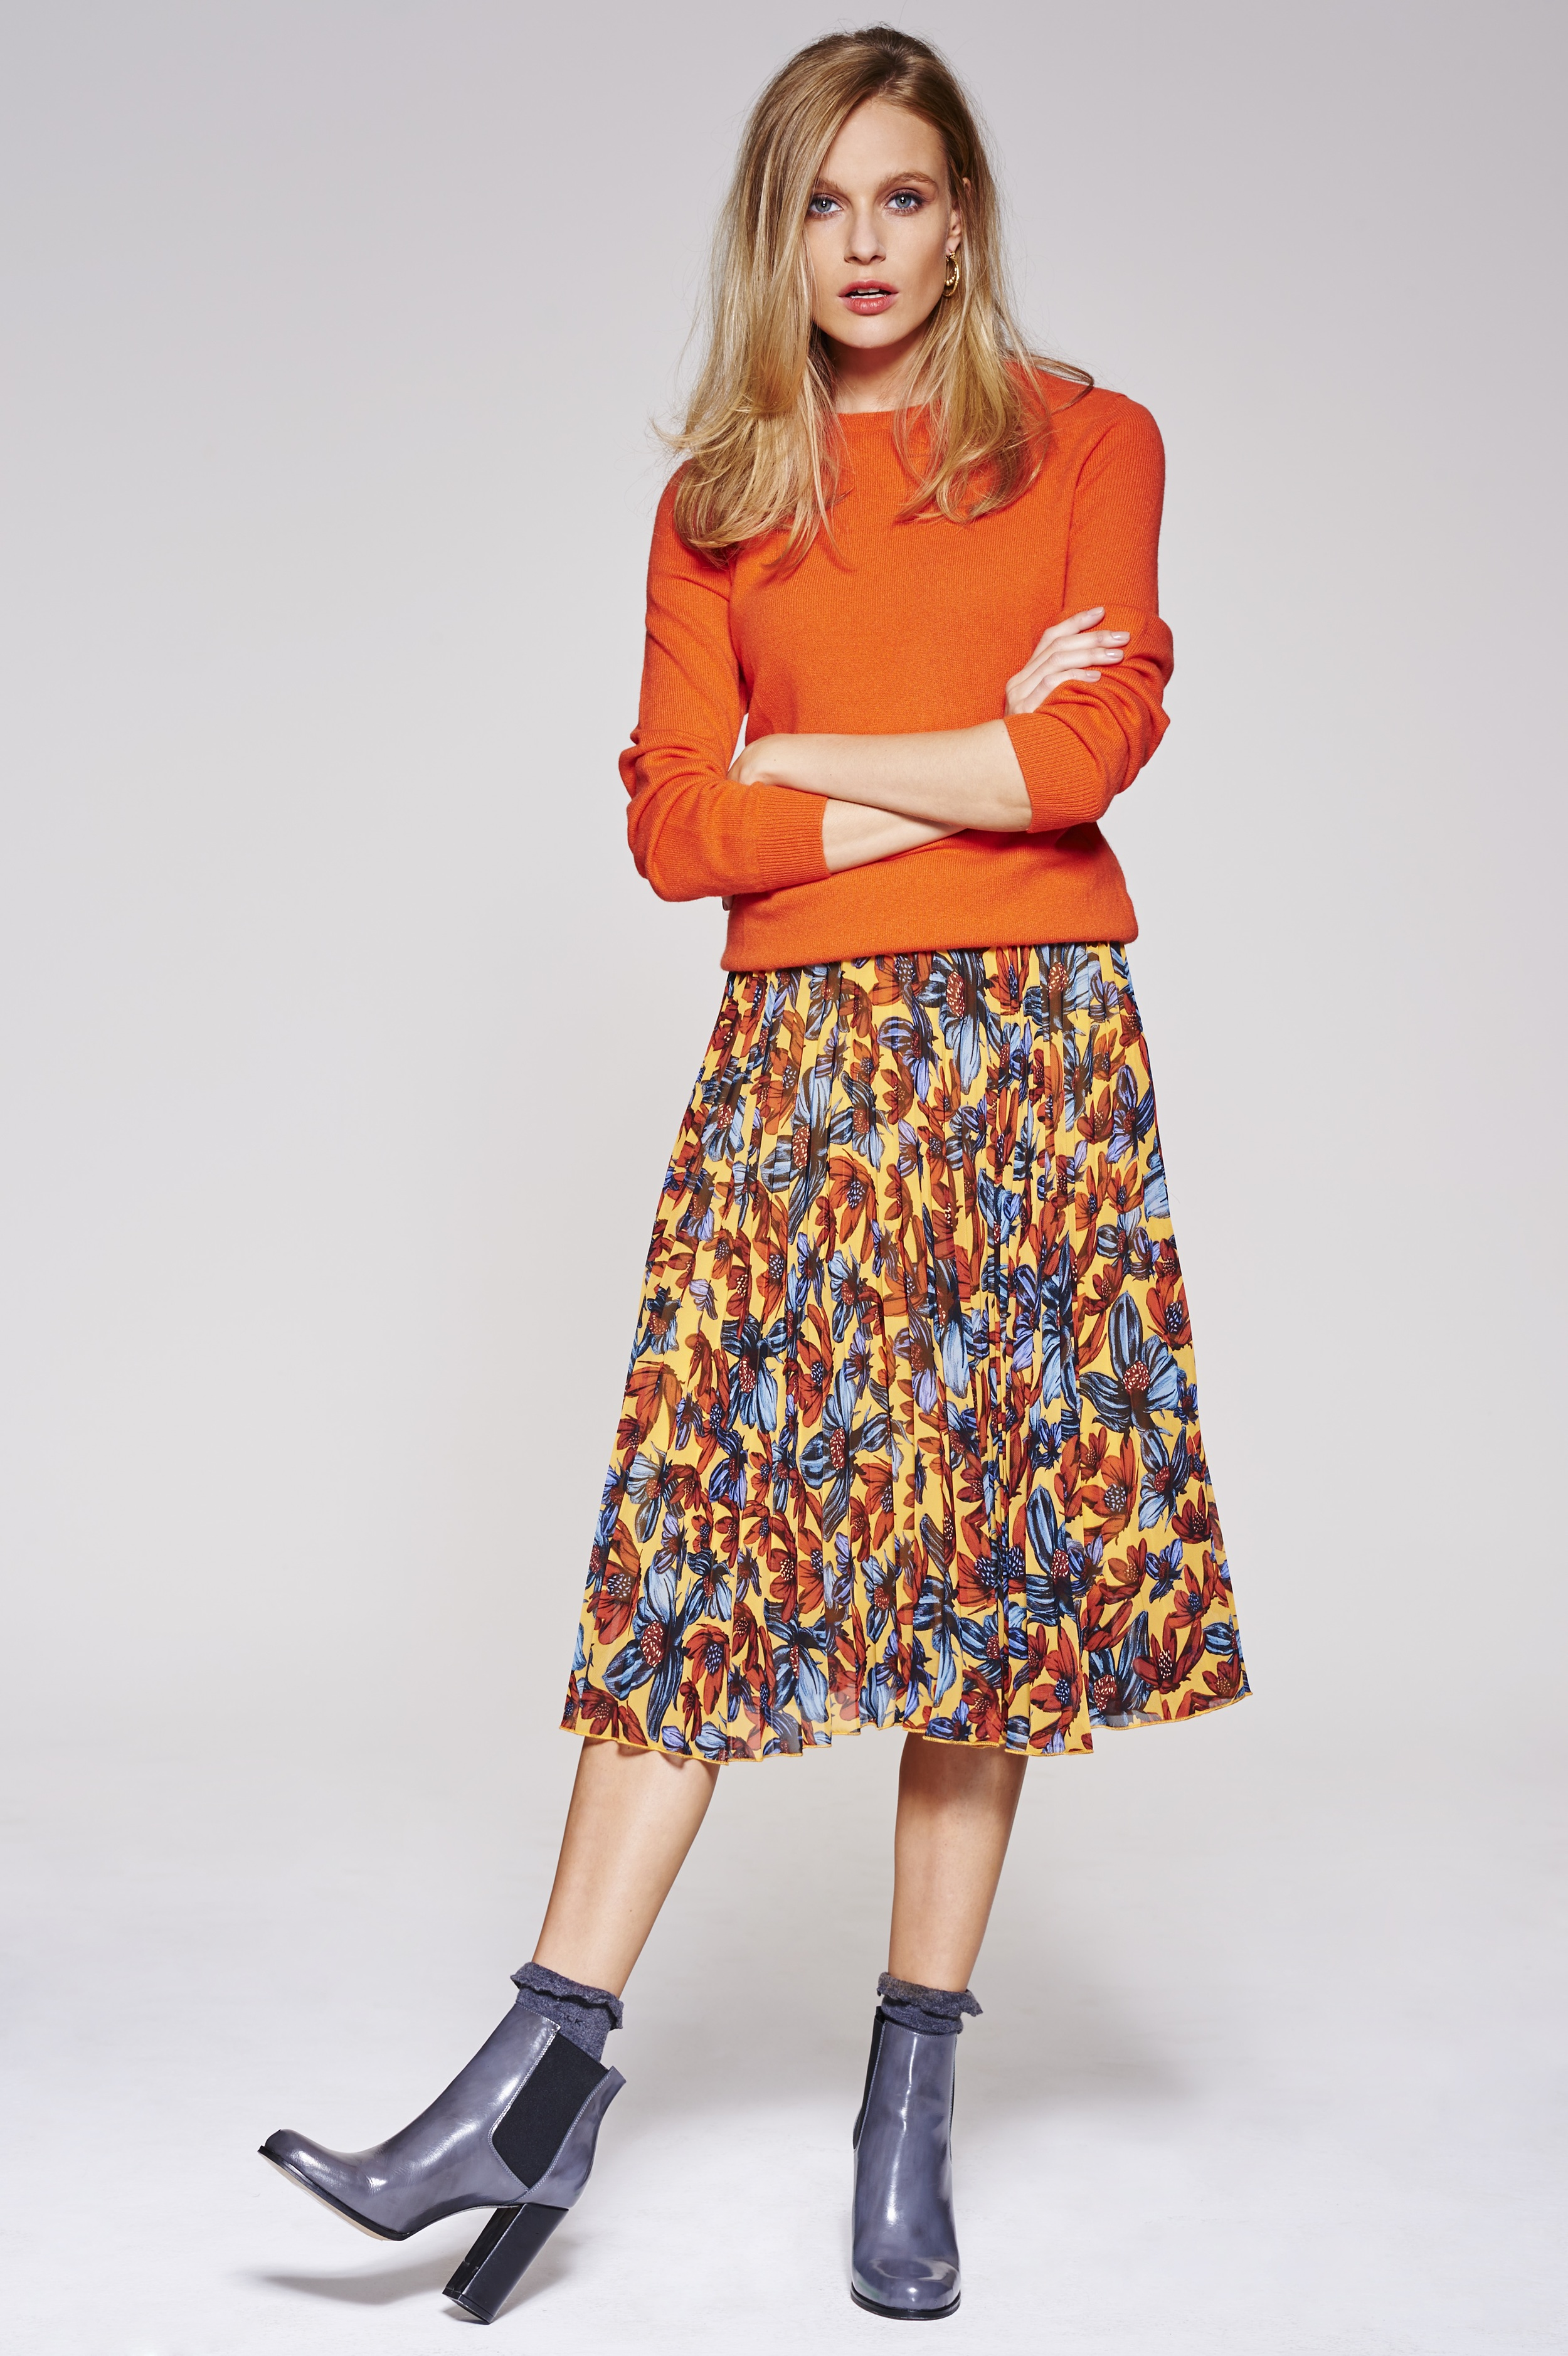 Orange cashmere jumper, £75,  M&S     Mid-length pleated floral skirt, £45,  Topshop     Grey socks, £2.99,  TK Maxx     Grey heeled ankle boots, £115,  Dune